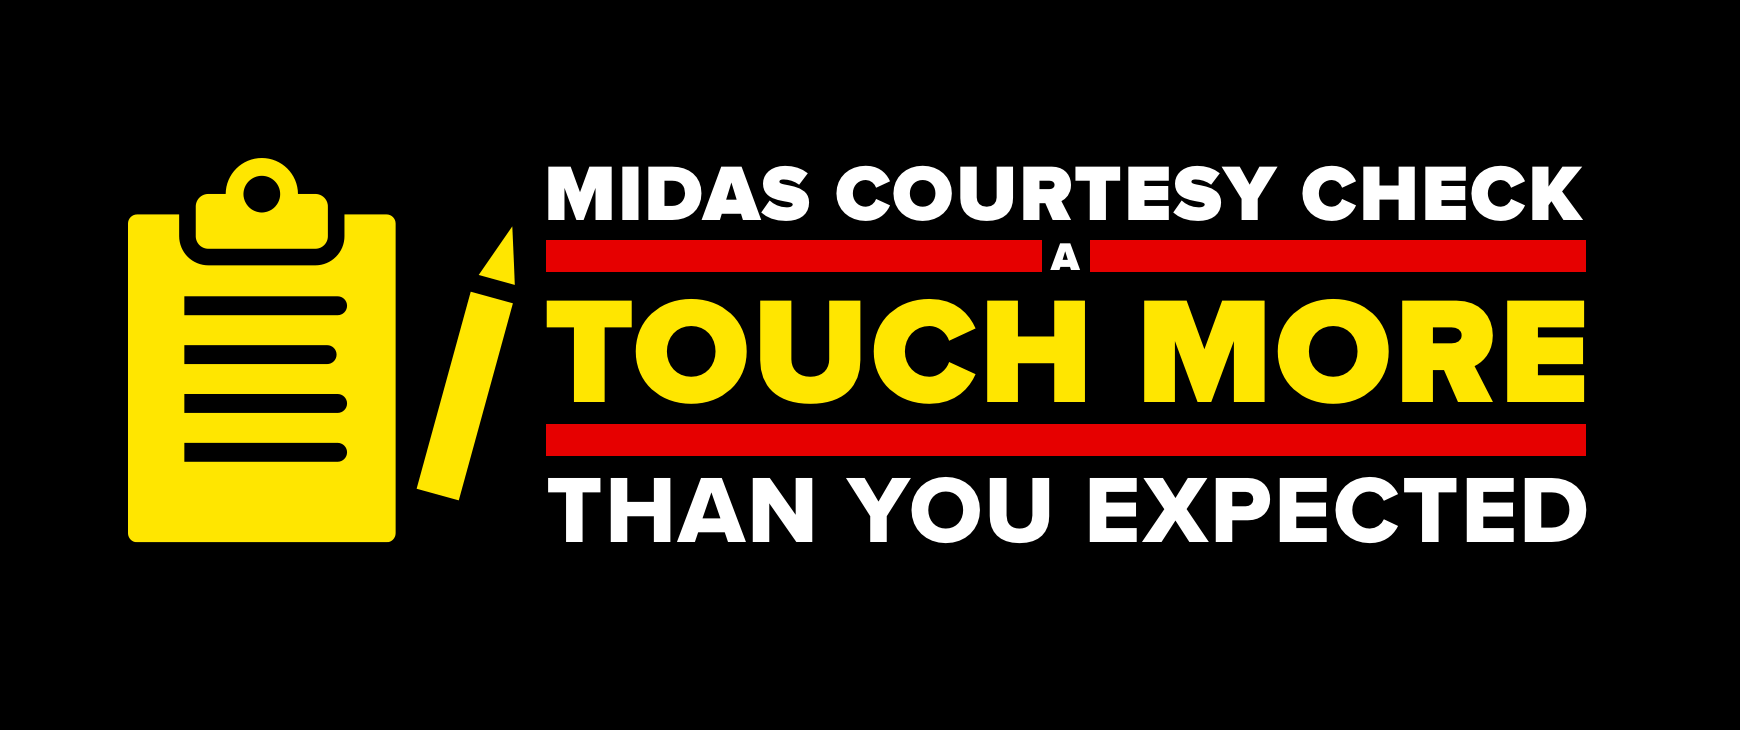 Midas Courtesy Check. A touch more than you expected